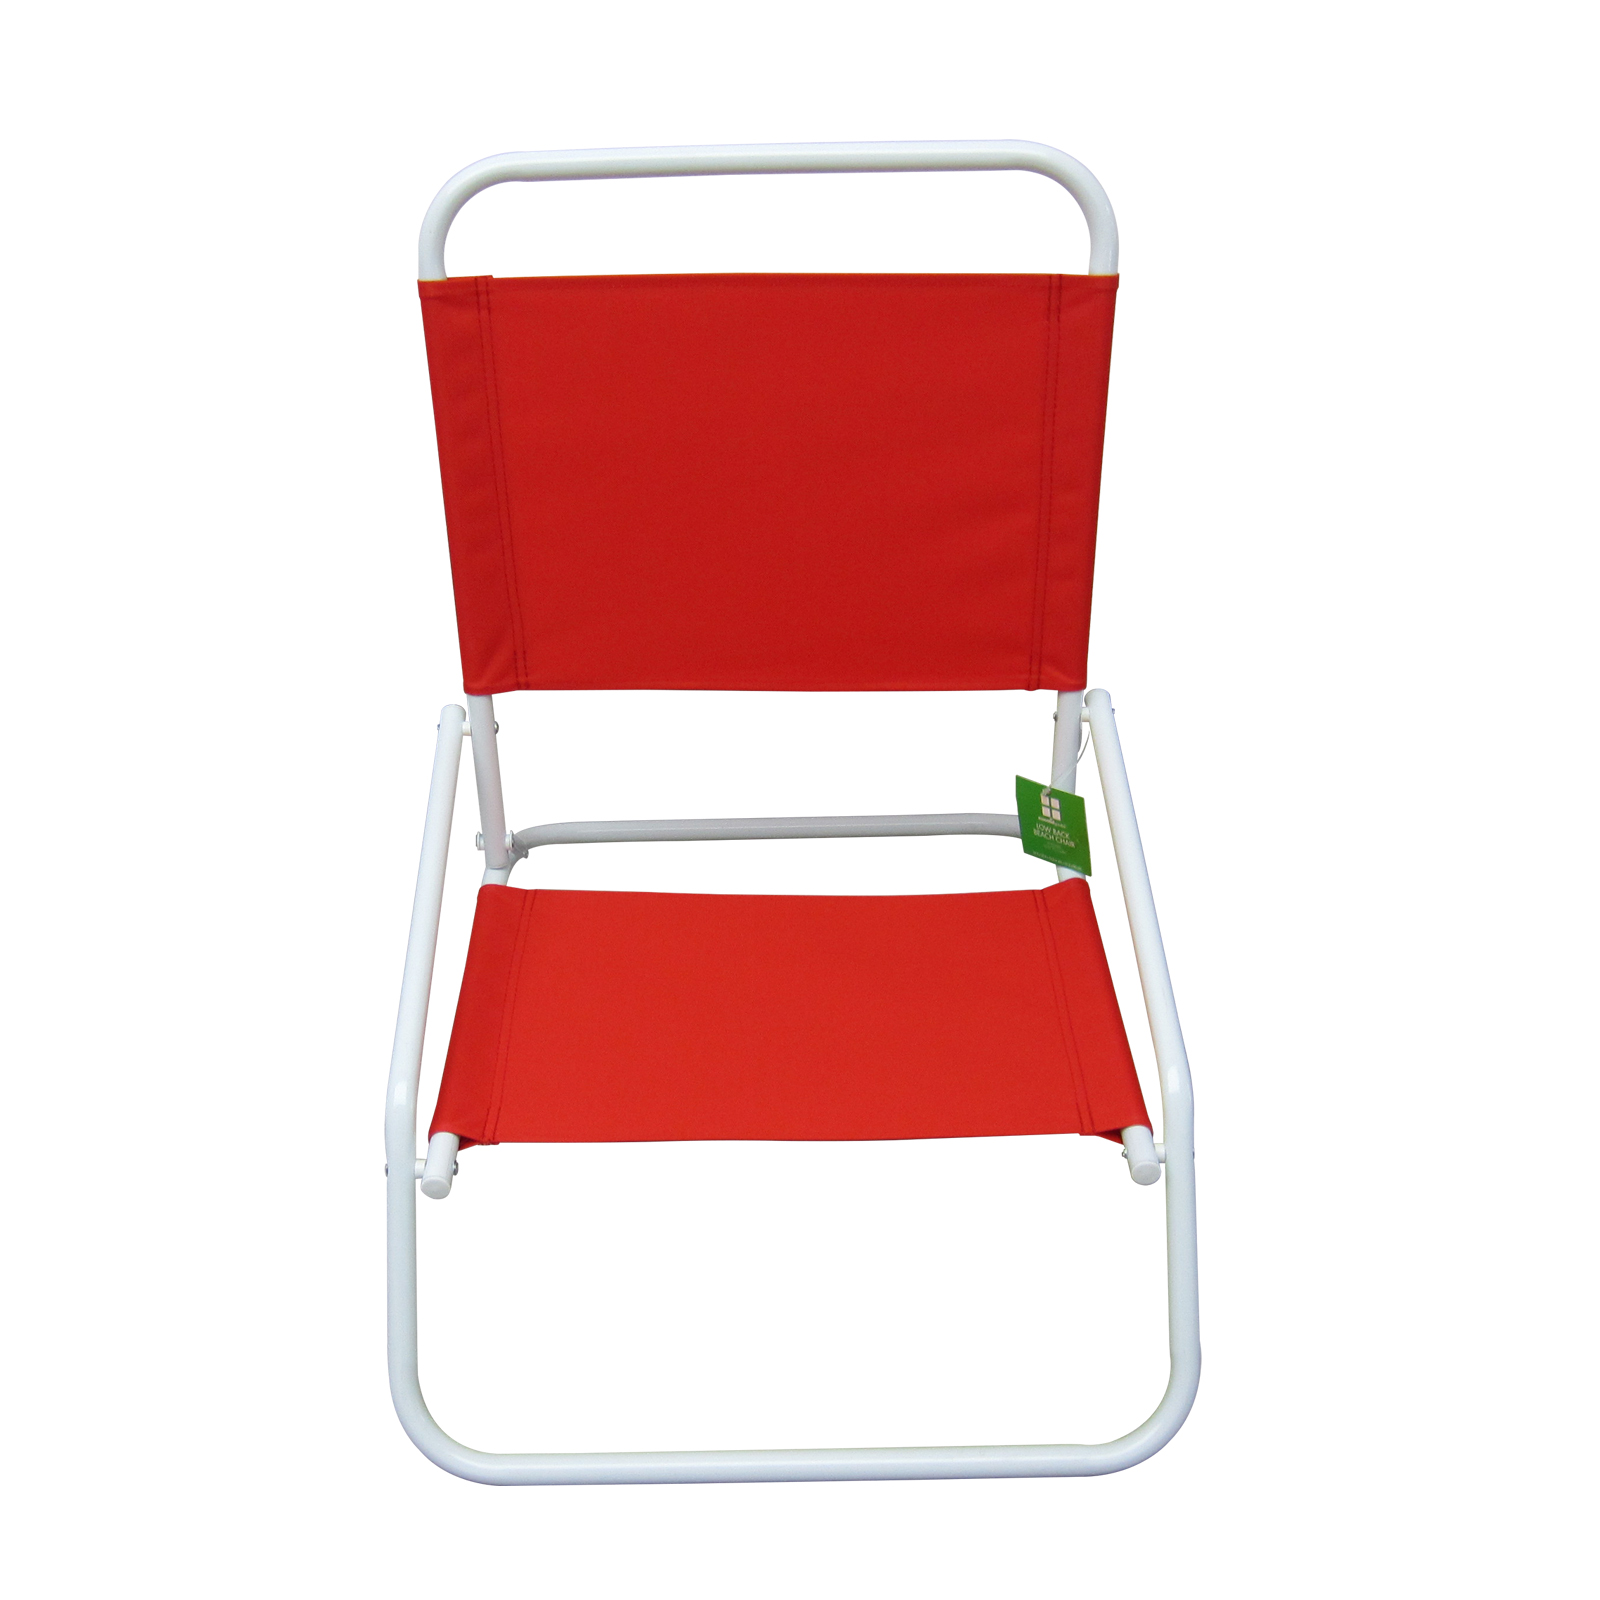 low back lawn chair church chairs wood frame essential garden beach solid red limited